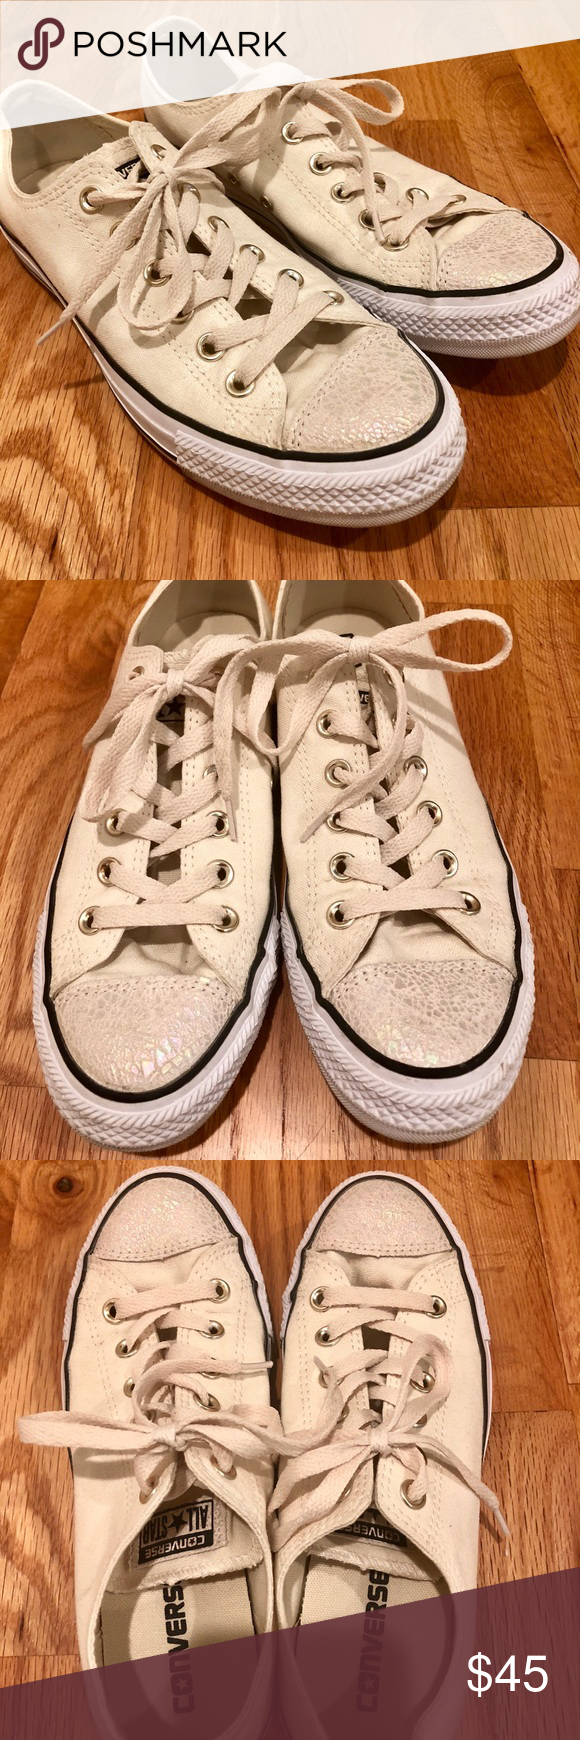 """275e4d0434b8 Converse Allstar in Ivory Women s 8.5 Cream Ivory with black detail.  Features an """"oil slick"""" toe. Lightly used in great condition."""